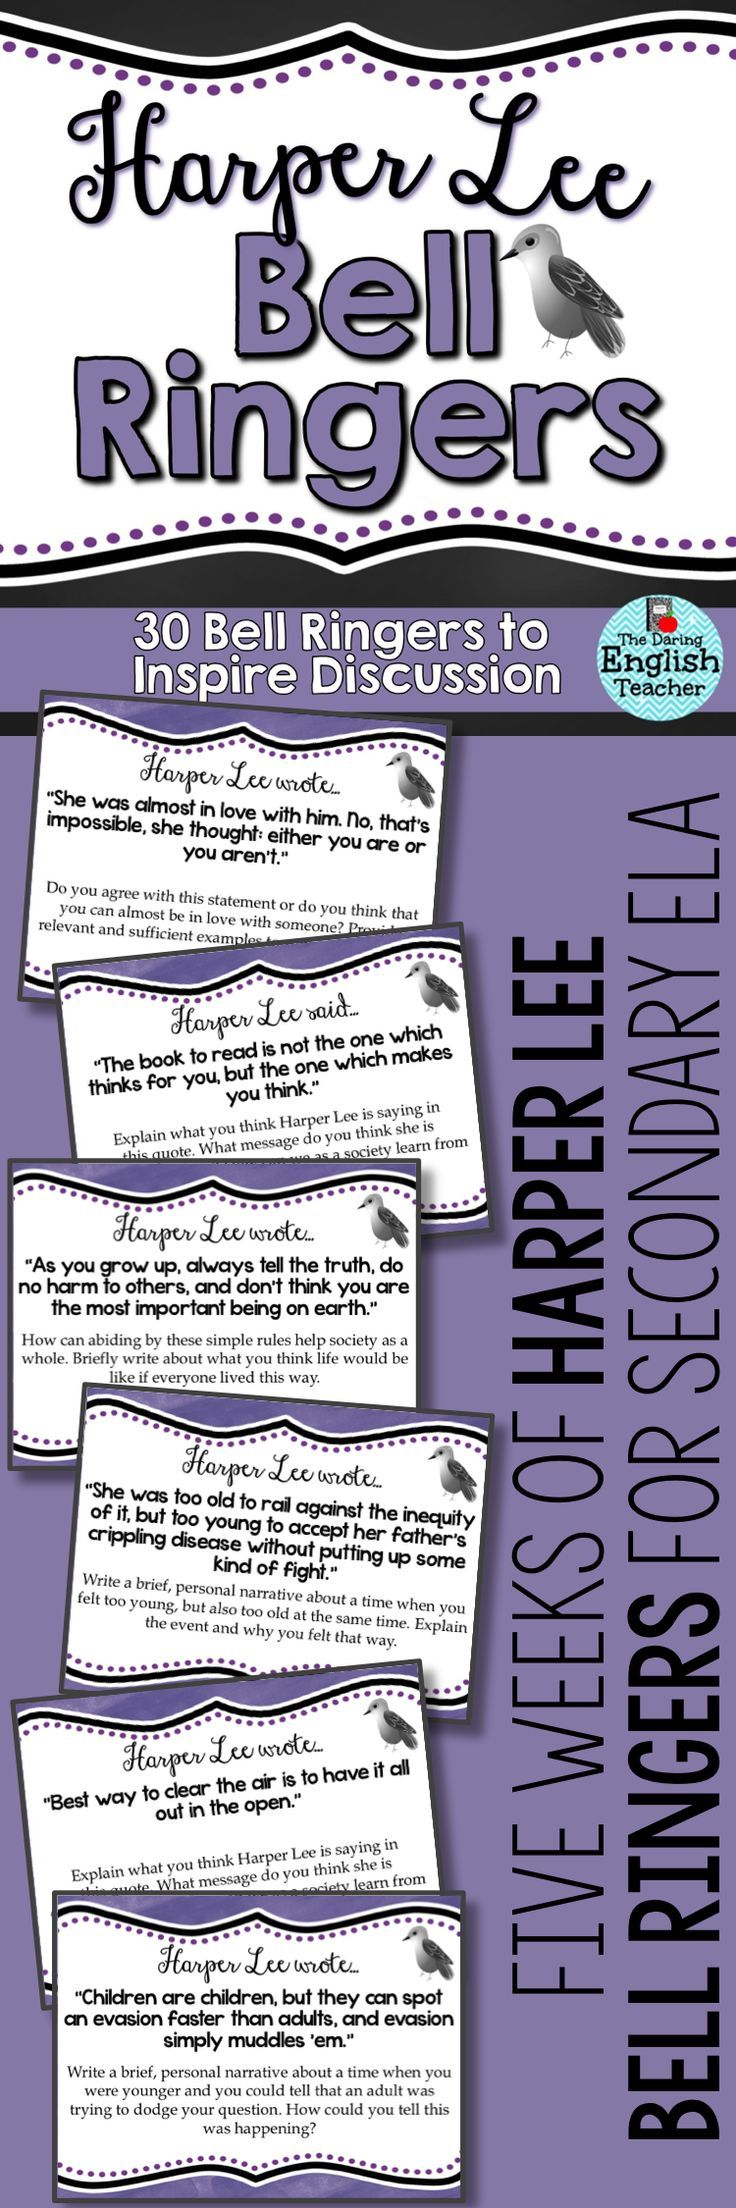 Kill mockingbird scrapbook ideas - Begin Each Day Of Your To Kill A Mockingbird Unit With These Harper Lee Inspired